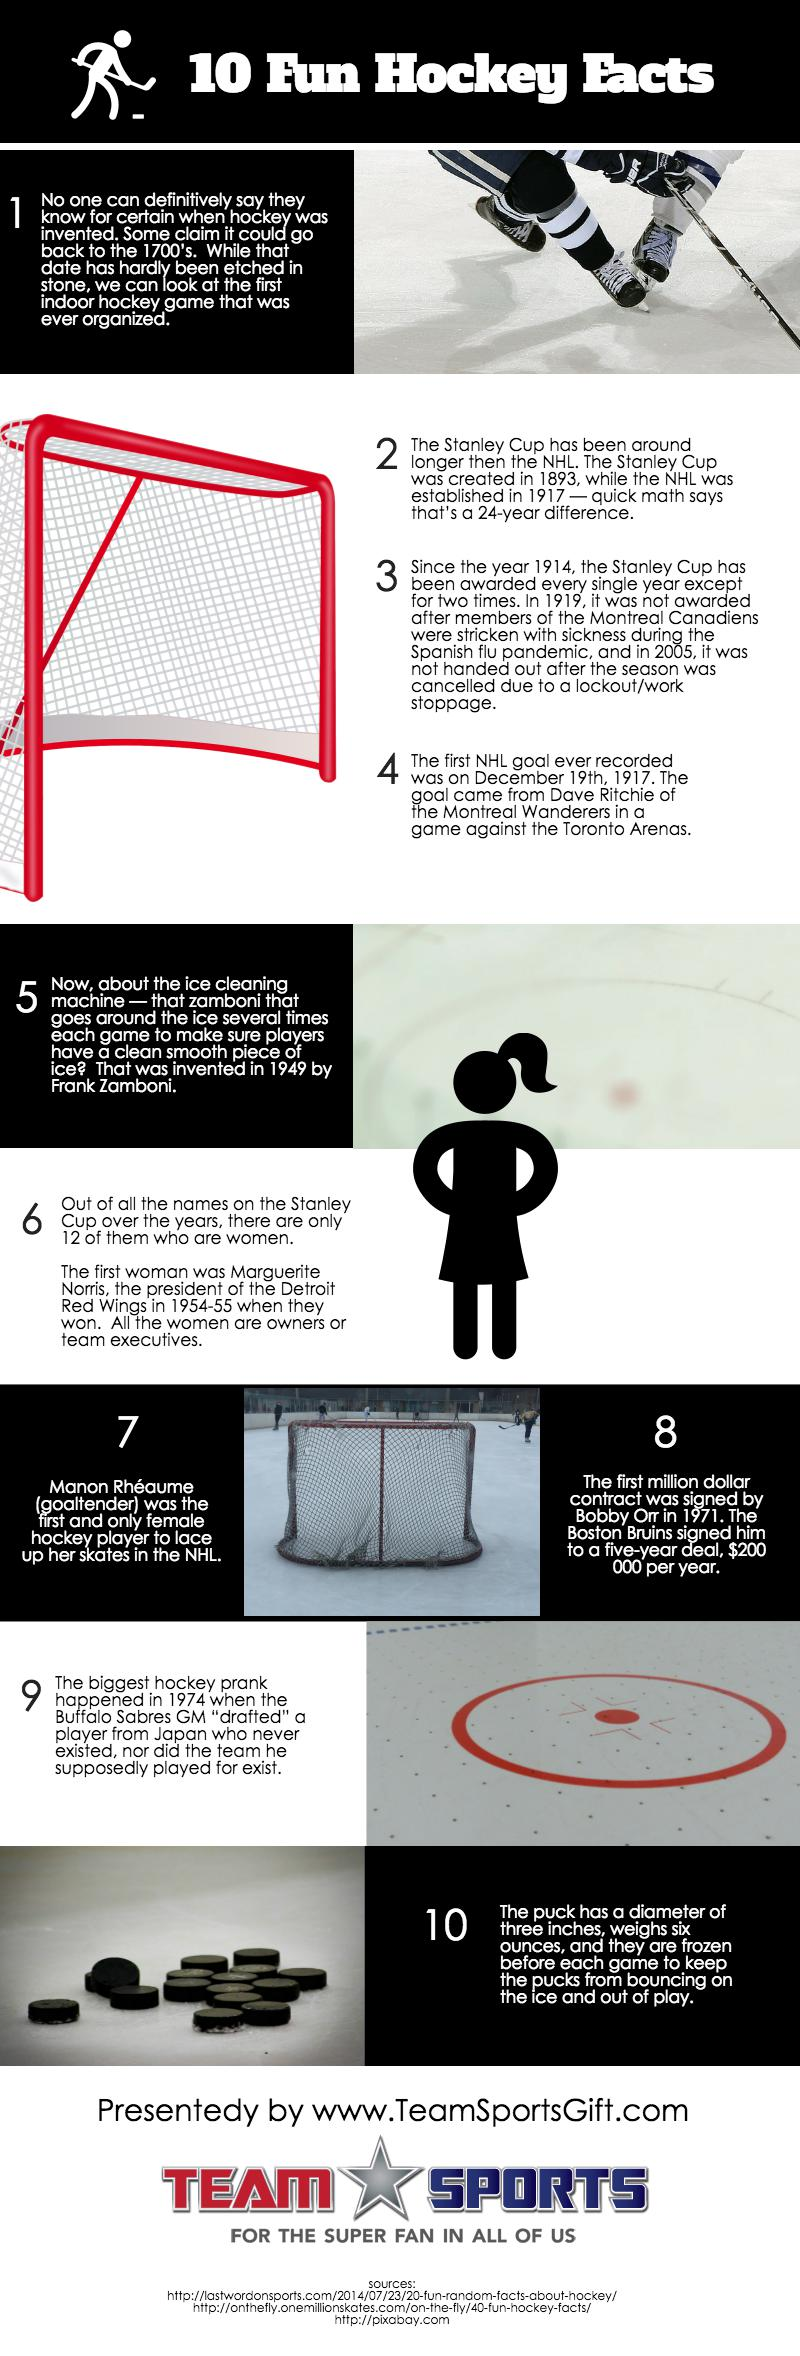 Hockey facts infographic